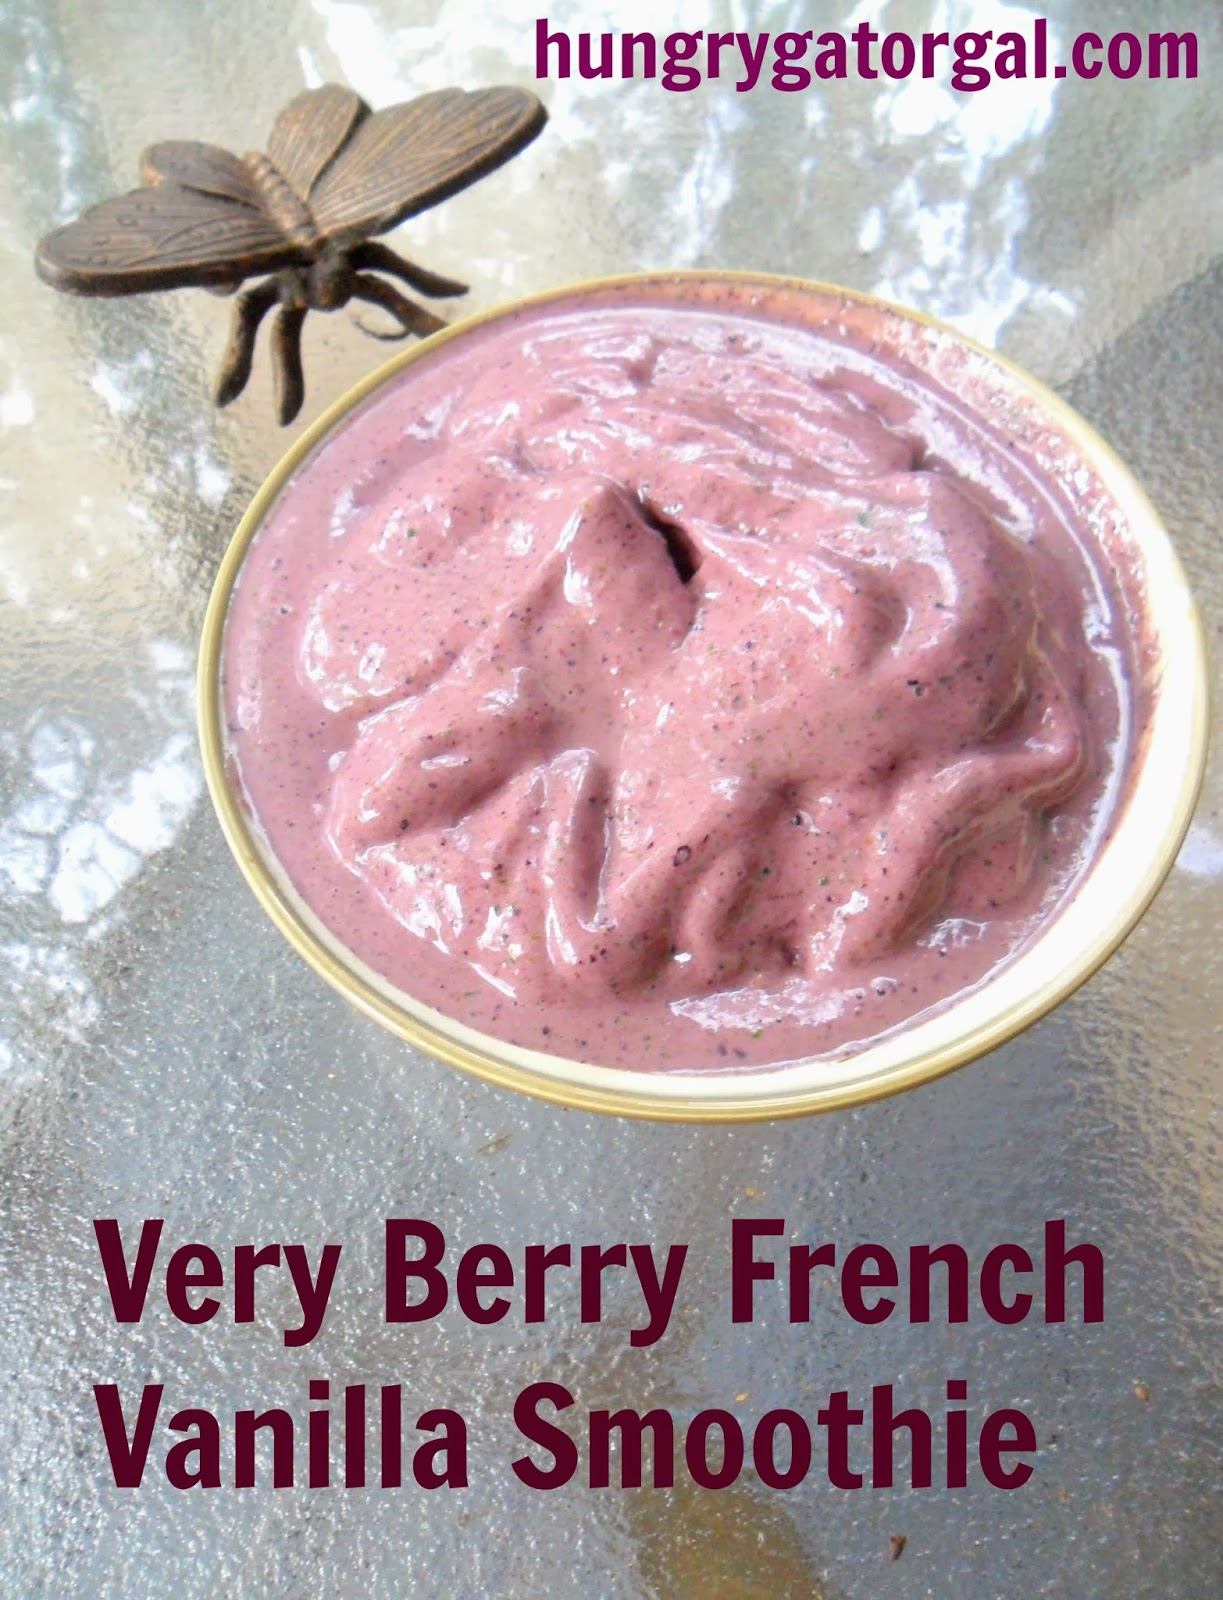 Very Berry French Vanilla Smoothie from Hungry Gator Gal #OneChange #VegaOne